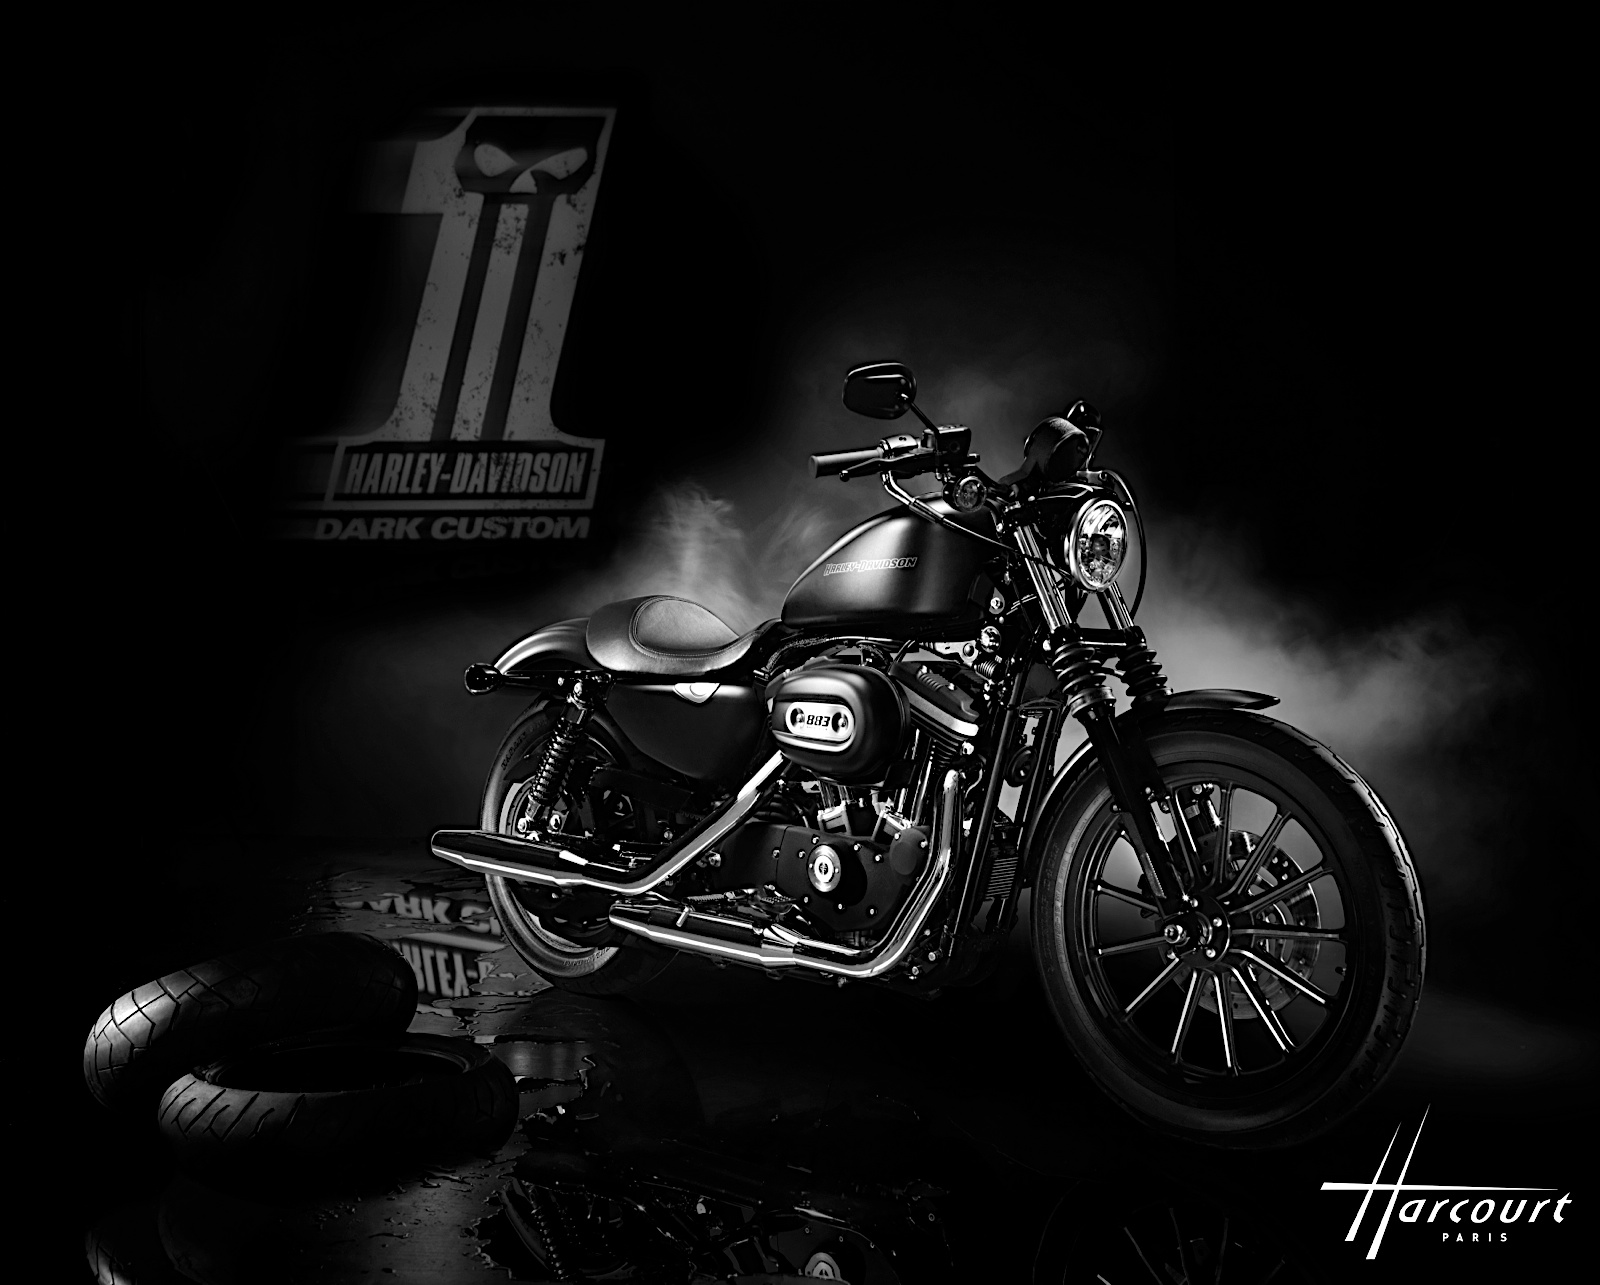 Harley Sportster Nightster Custom Free Hd Wallpaper 2000 Xl 883 Wiring Harness The And Buell Motorcycle Davidson Iron